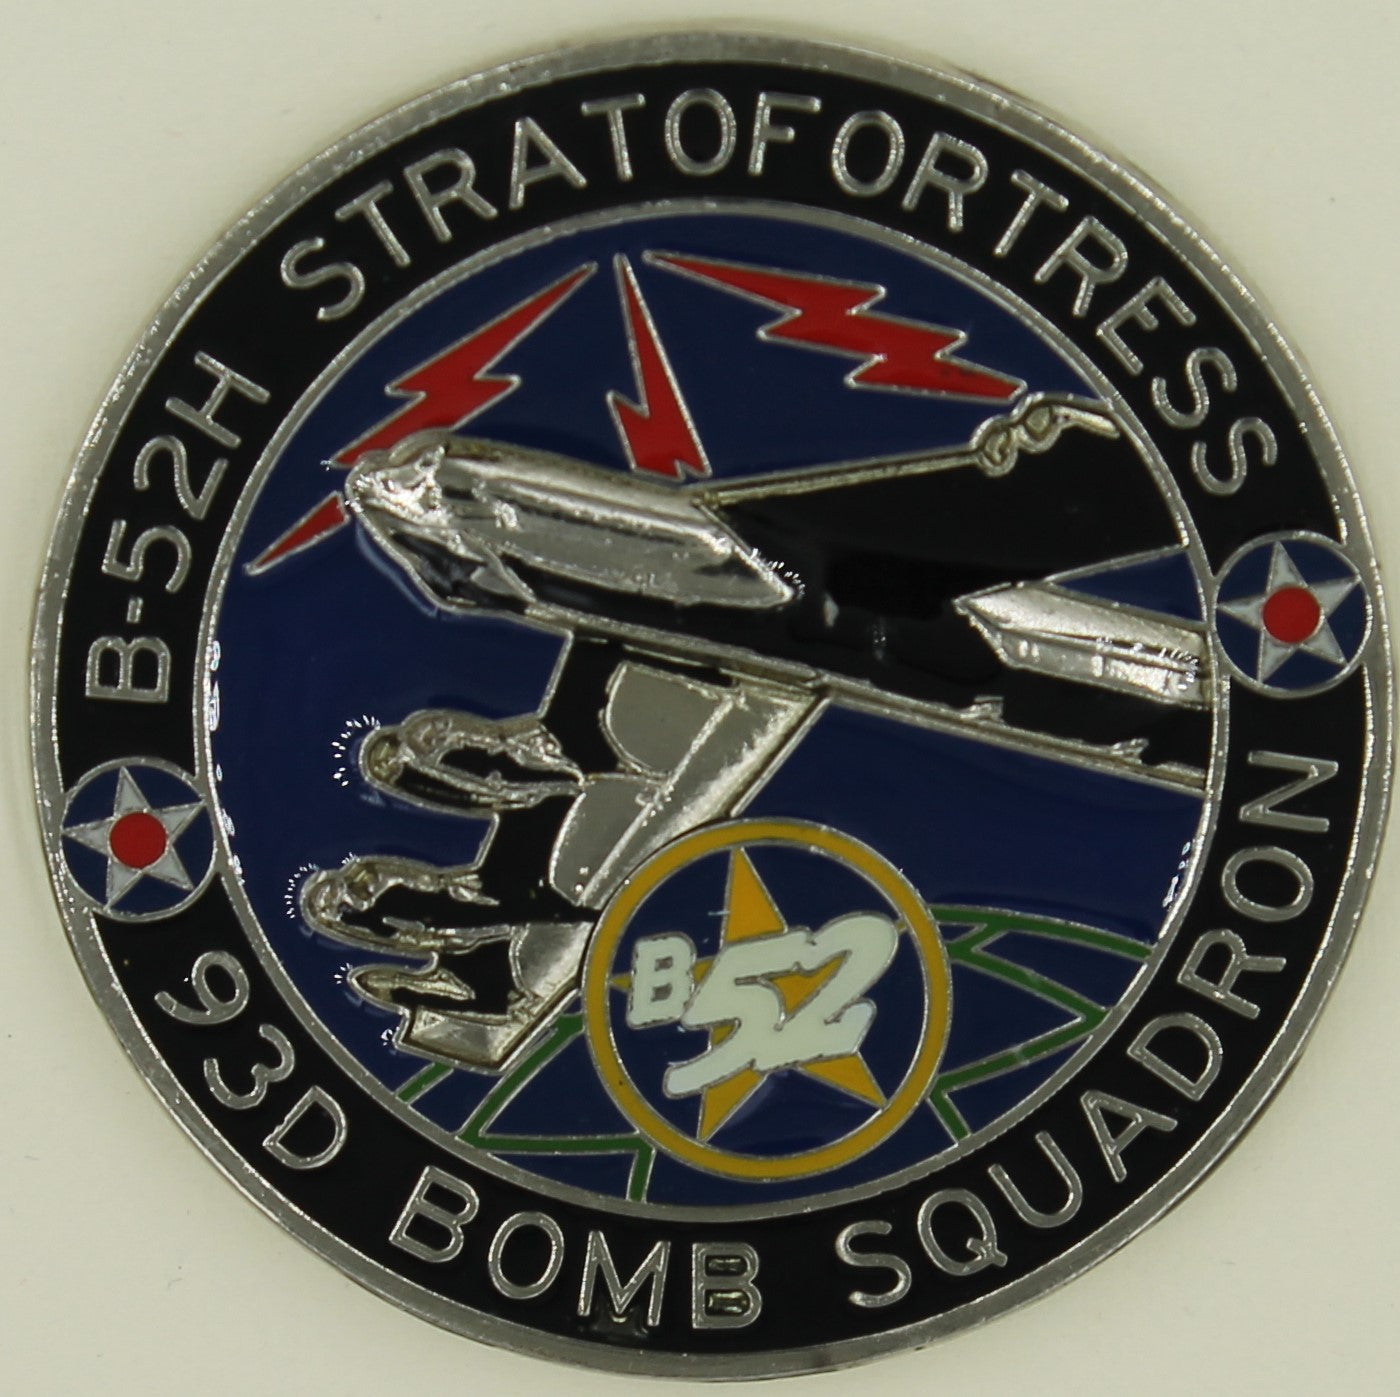 93rd Bomb Squadron B-52 Bomber BUFF Air Force Challenge Coin – Rolyat  Military Collectibles